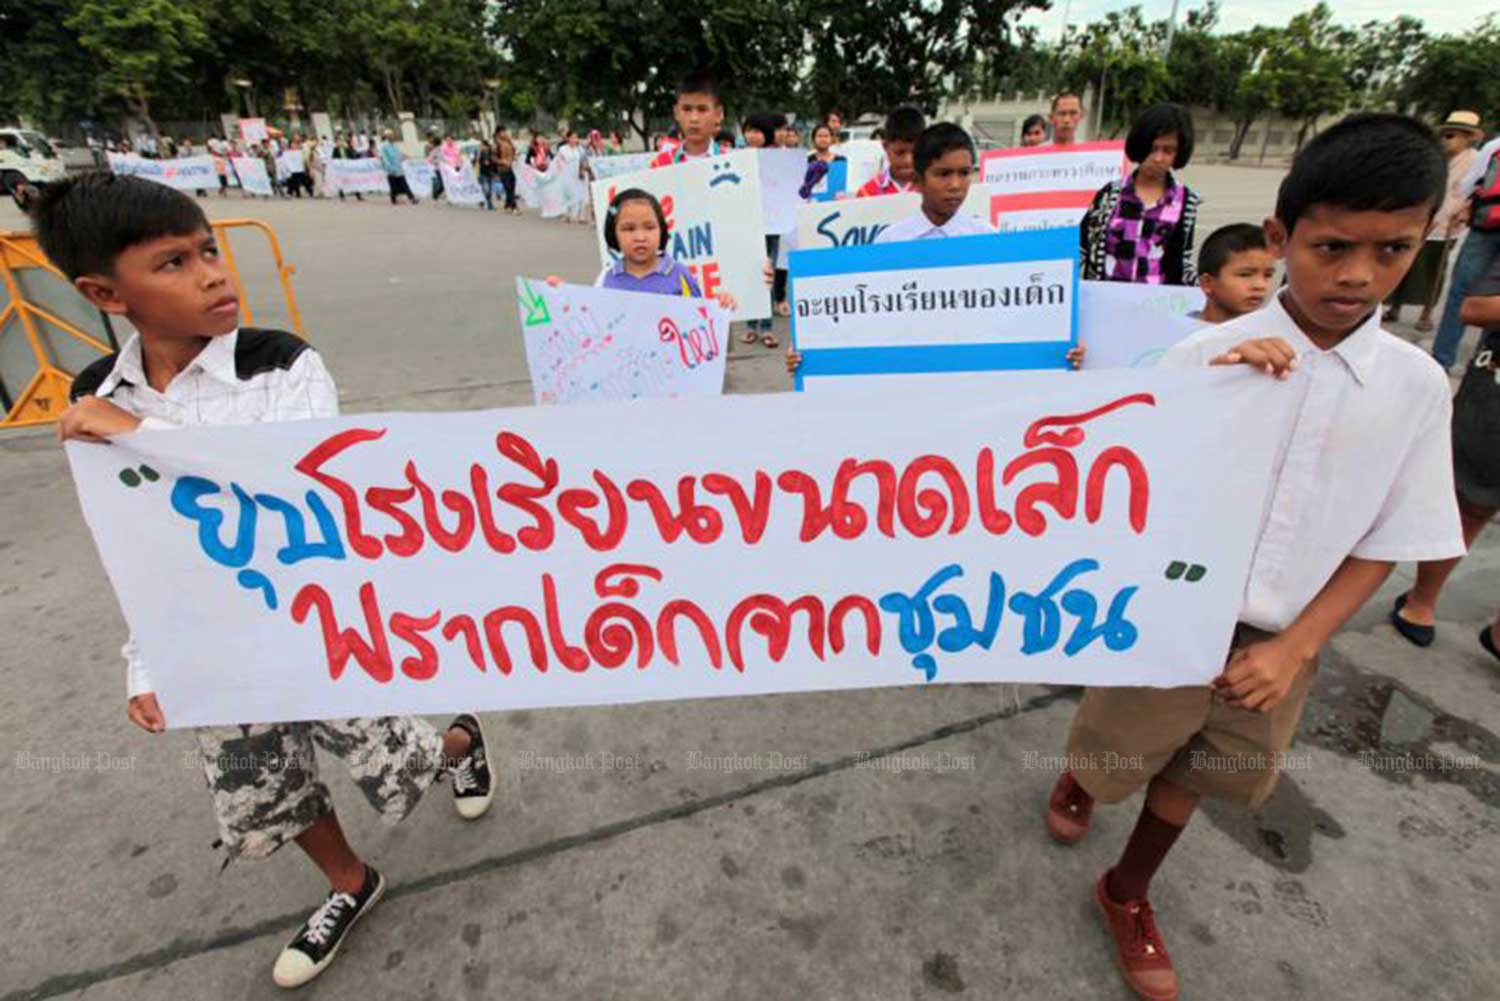 Children join a rally at the Royal Plaza in Bangkok on June 16, 2011 against the Education Ministry's policy to merge or close about 2,500 small primary schools nationwide under the education quality improvement plan. (Bangkok Post file photo)